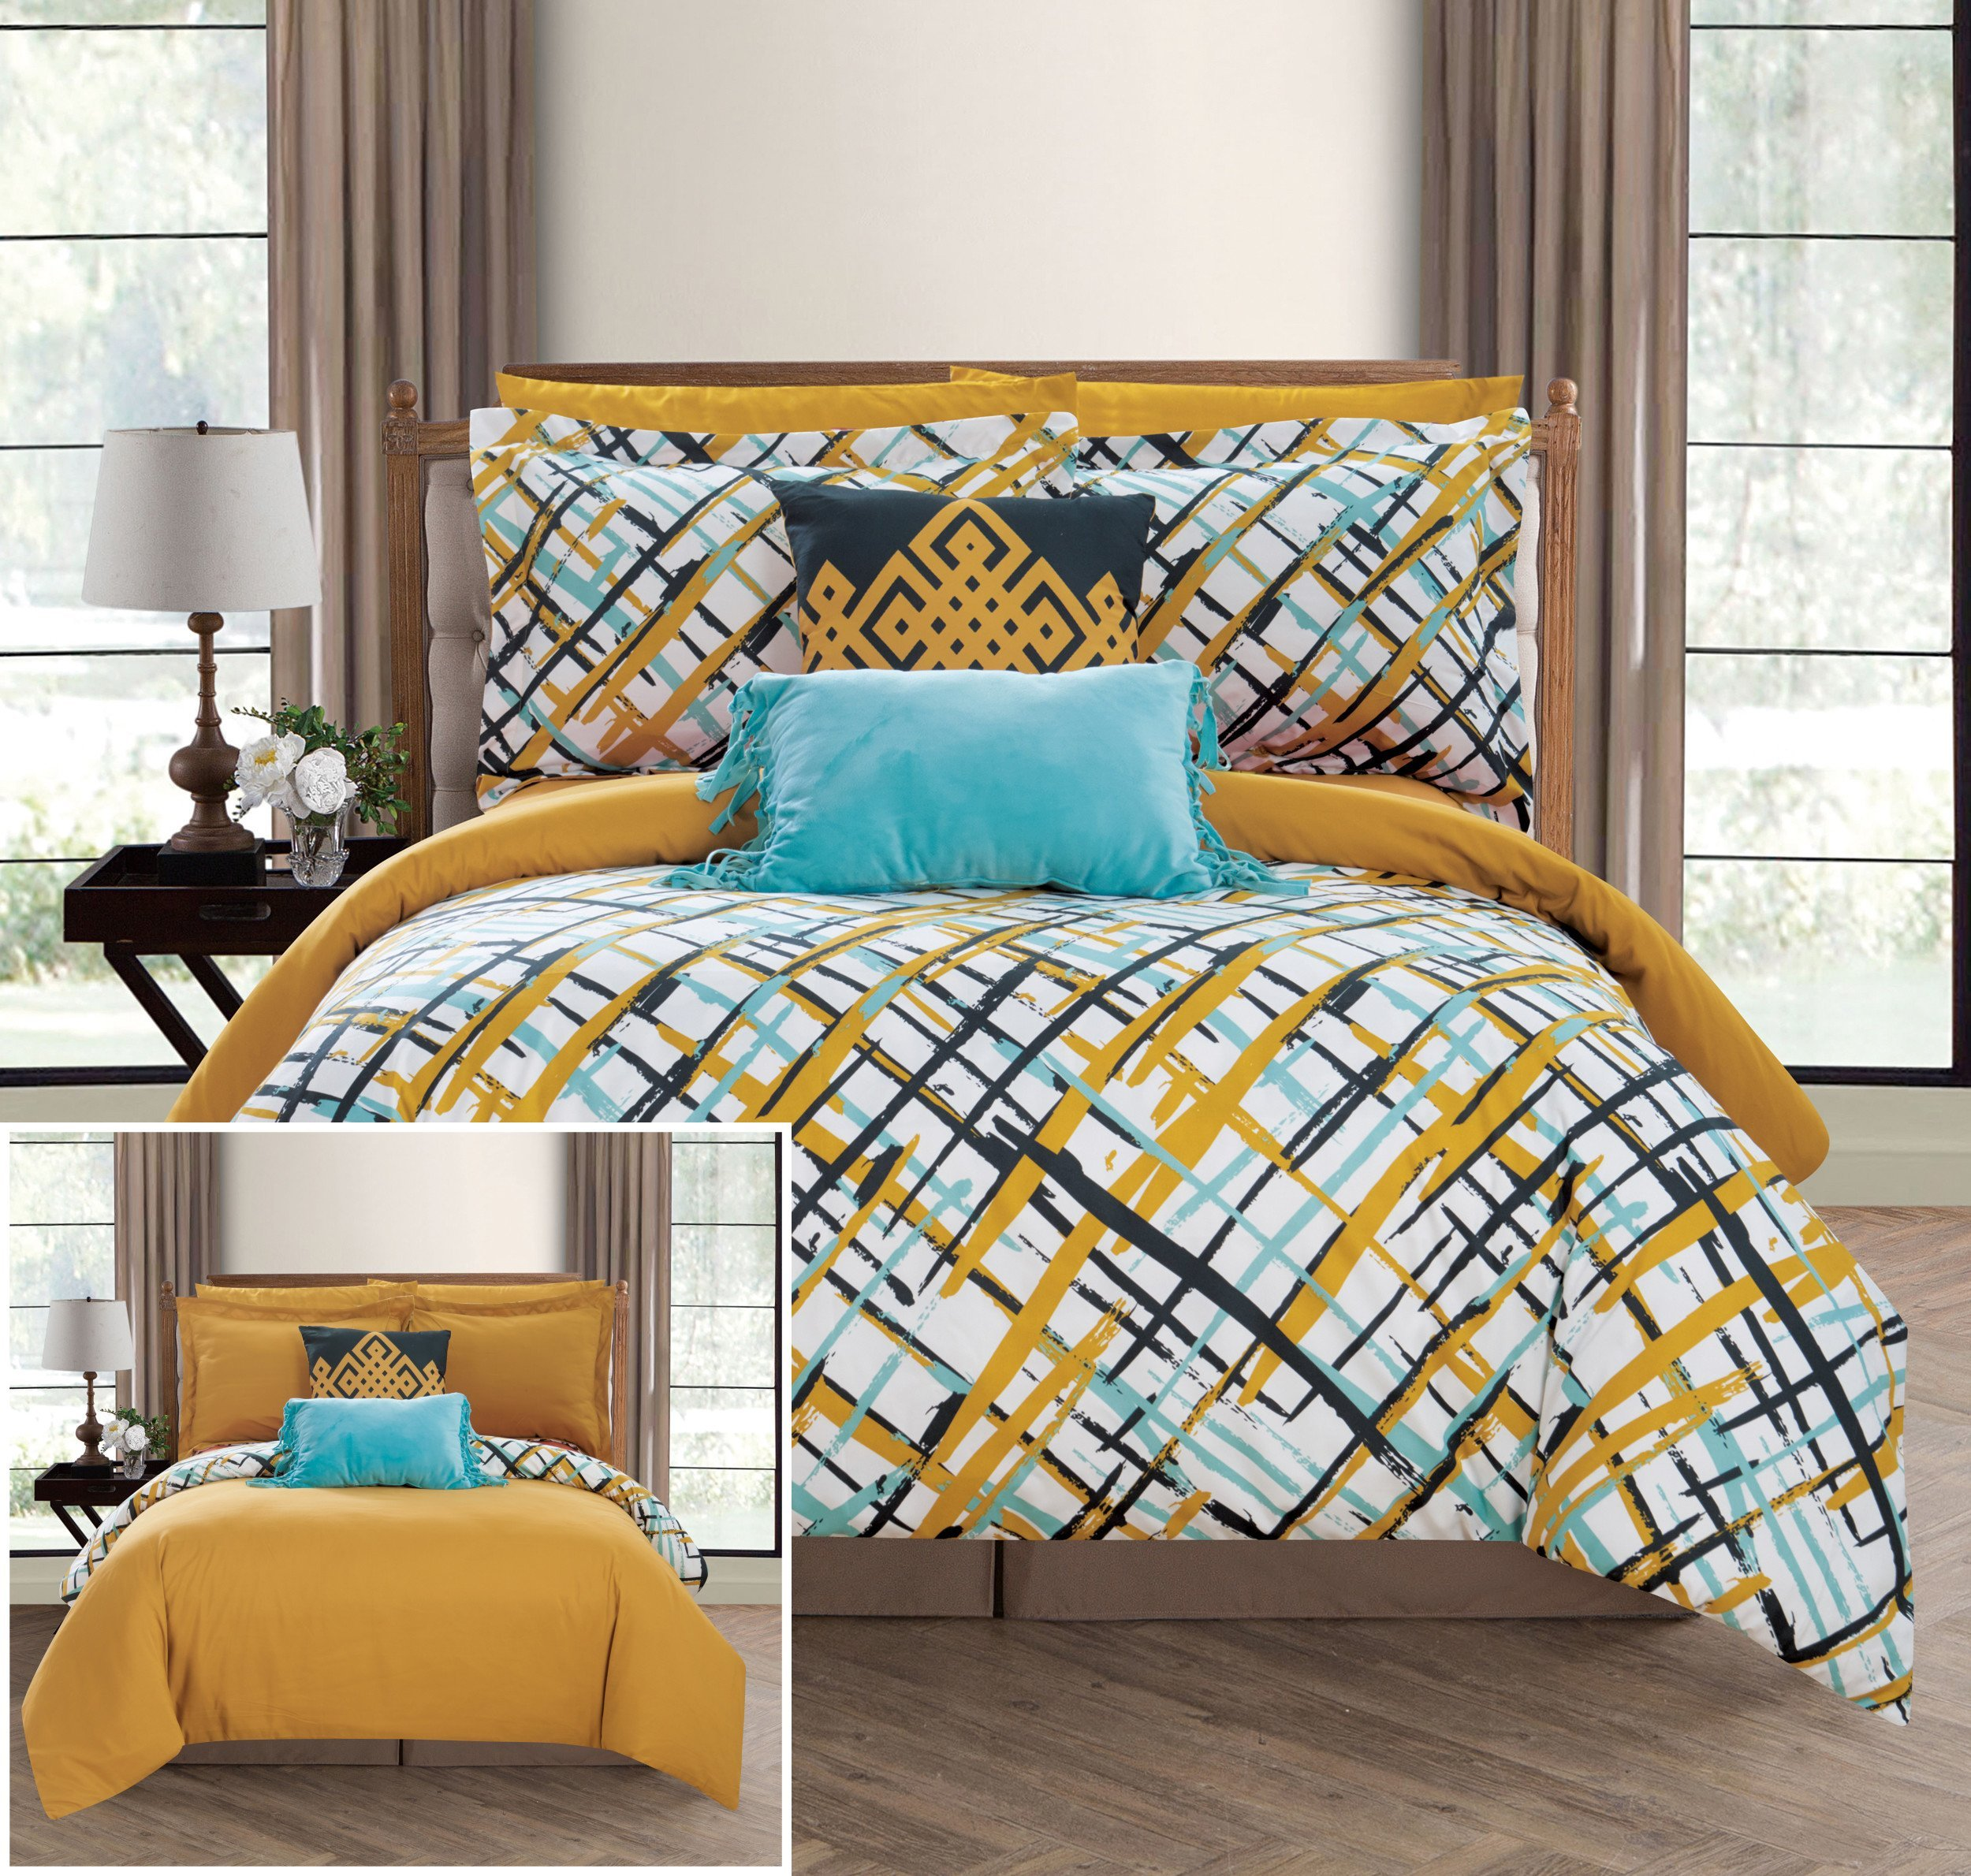 Chic Home Abstract 7 Piece Reversible Comforter Print Design Bed in a Bag-Sheet Set Decorative Pillows Shams Included/XL Size, Twin, Gold